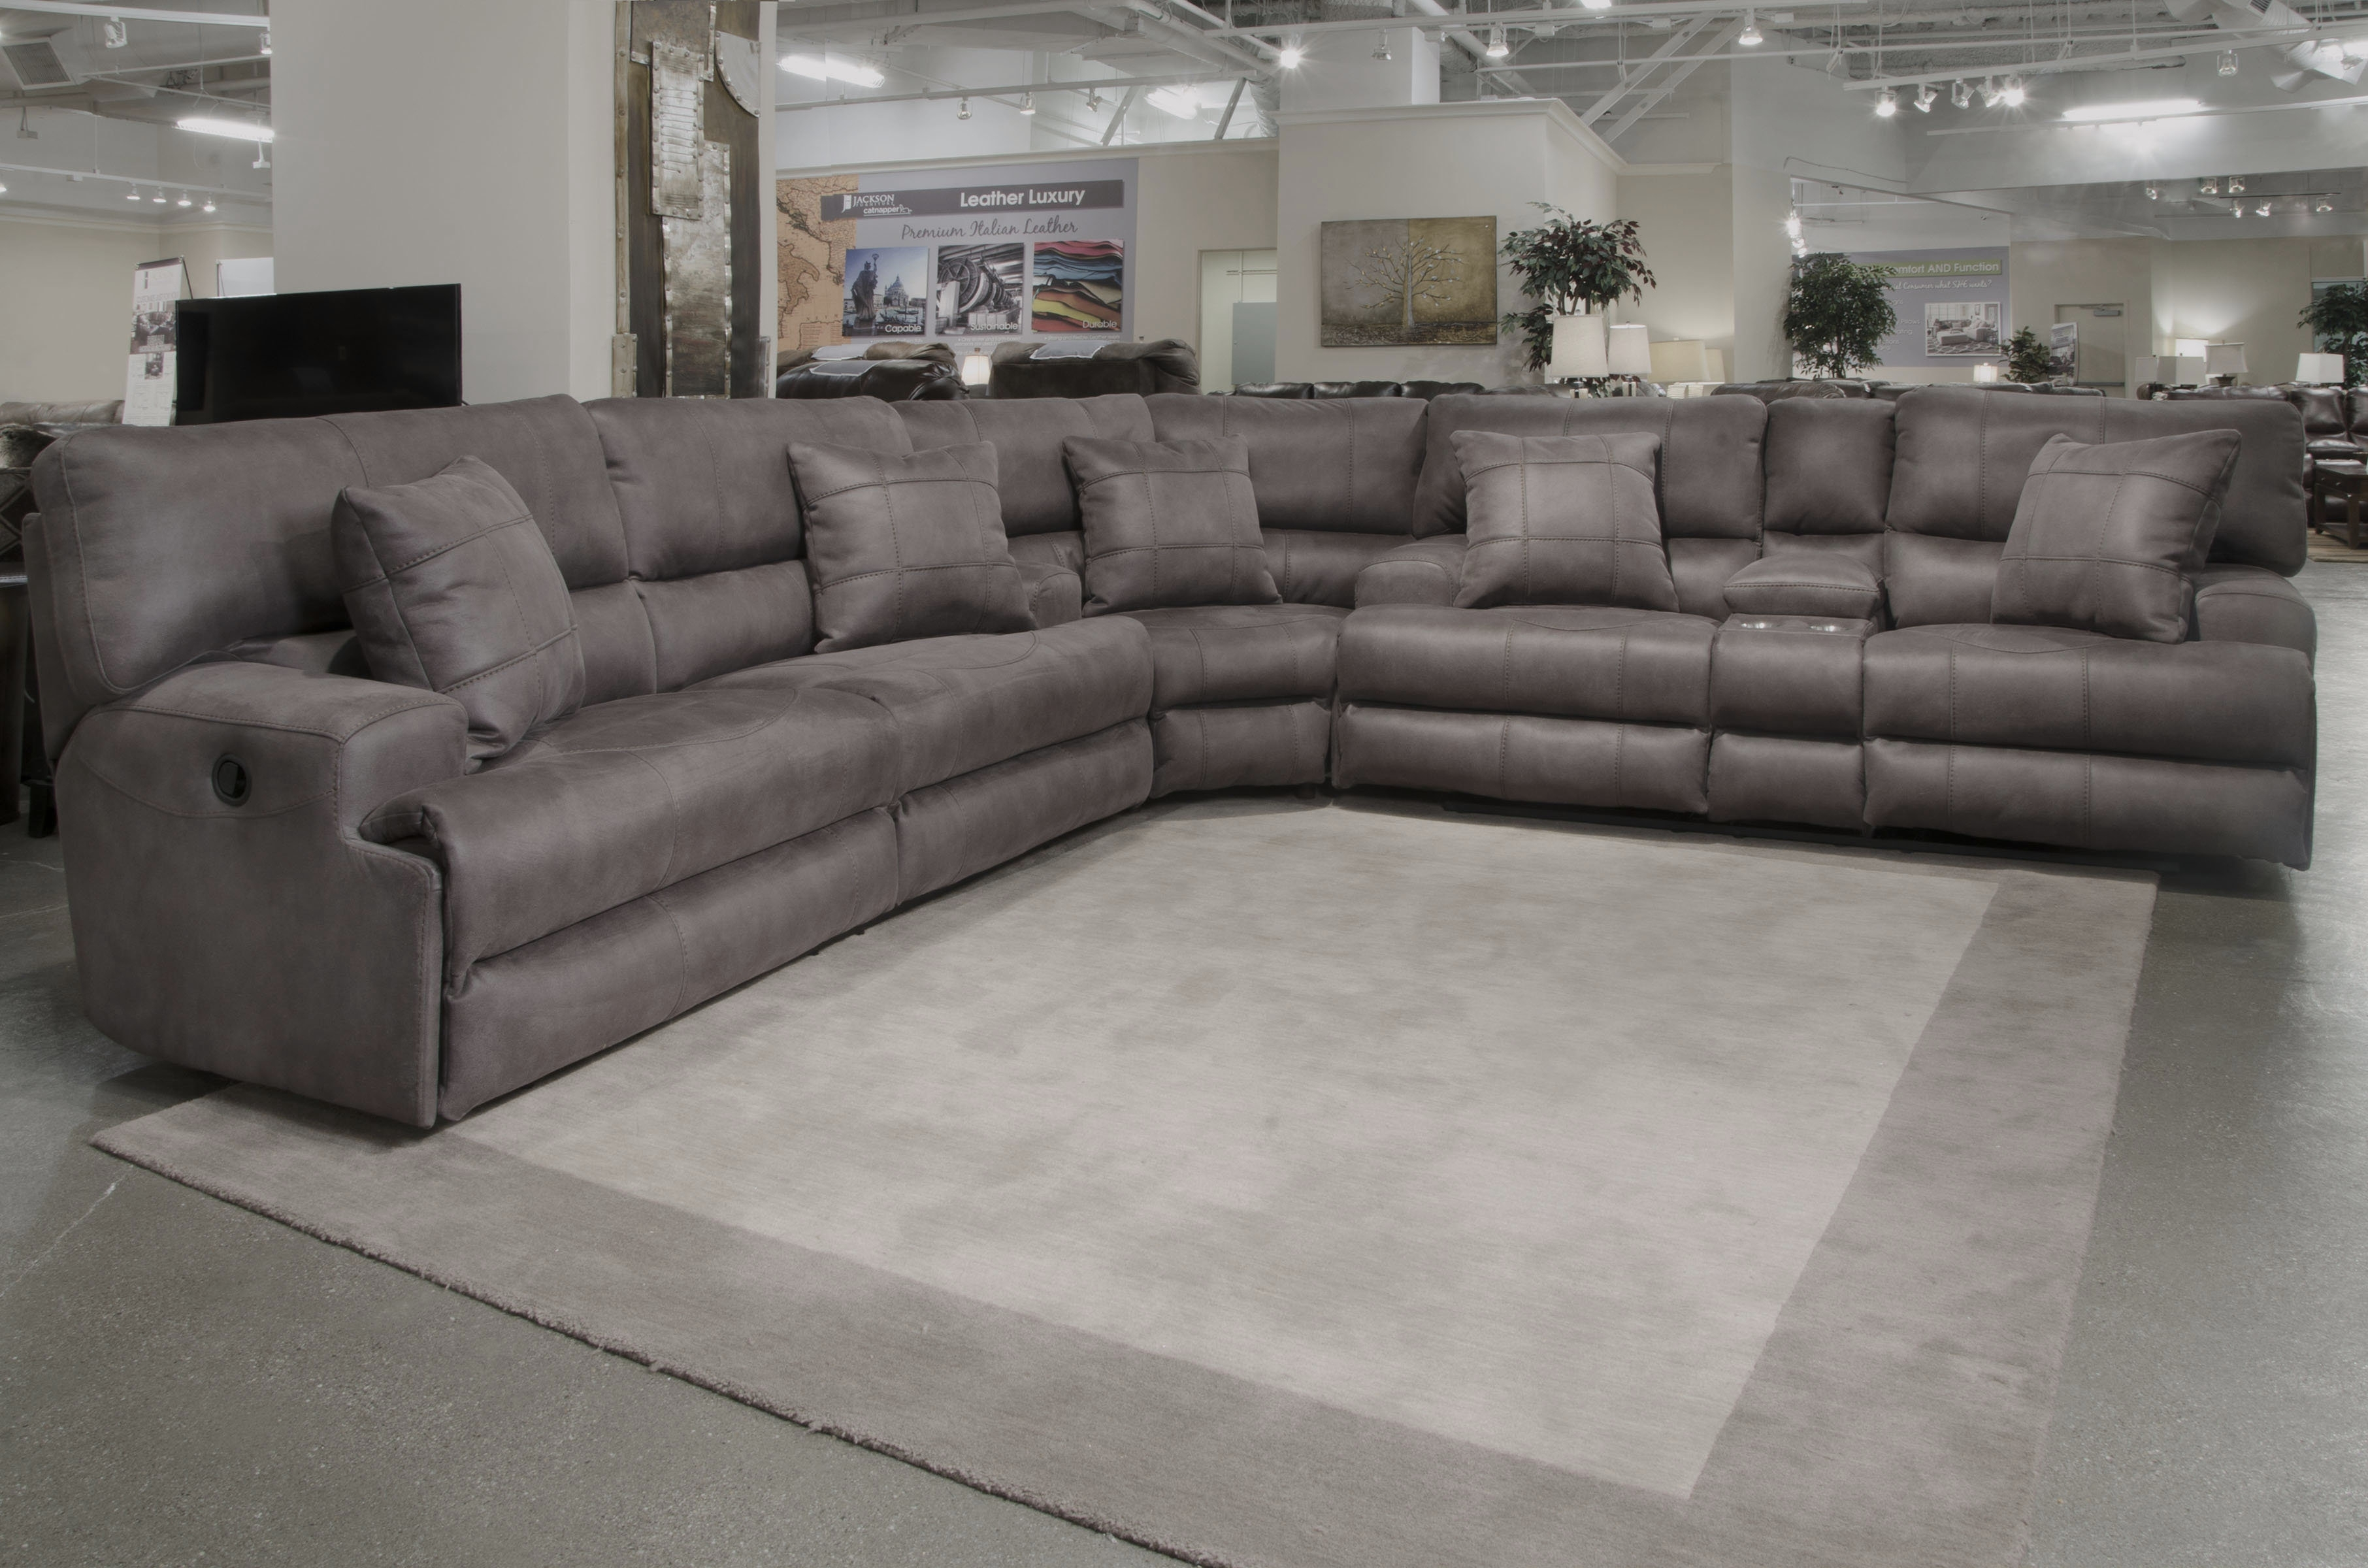 Catnapper Monaco Reclining Sectional | Wayfair Inside Jackson 6 Piece Power Reclining Sectionals With Sleeper (View 6 of 25)